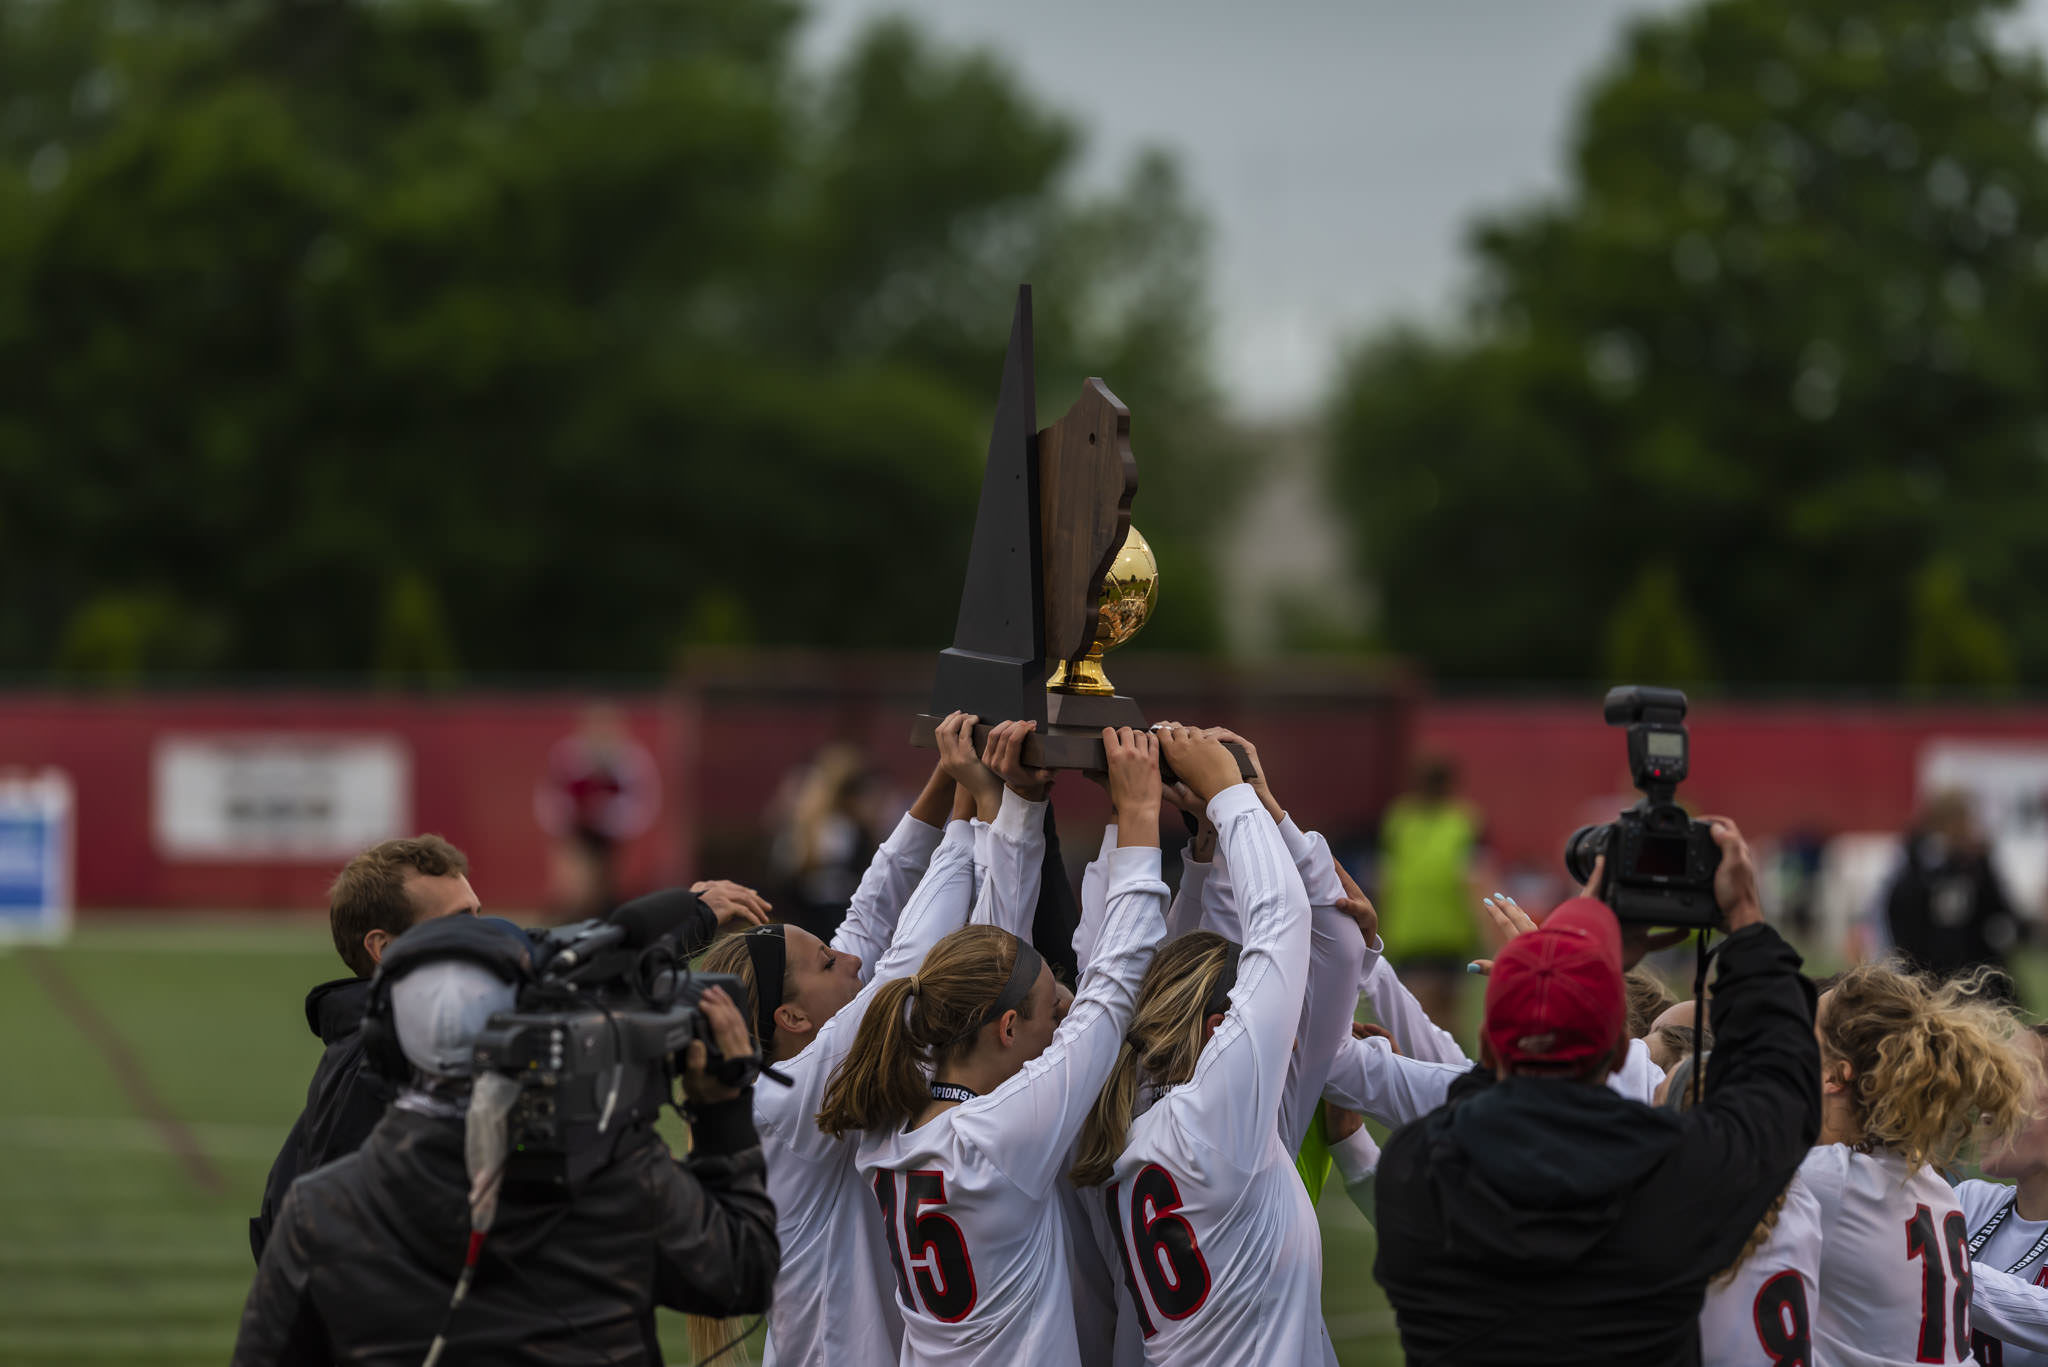 MUSKEGO STATE CHAMPIONS